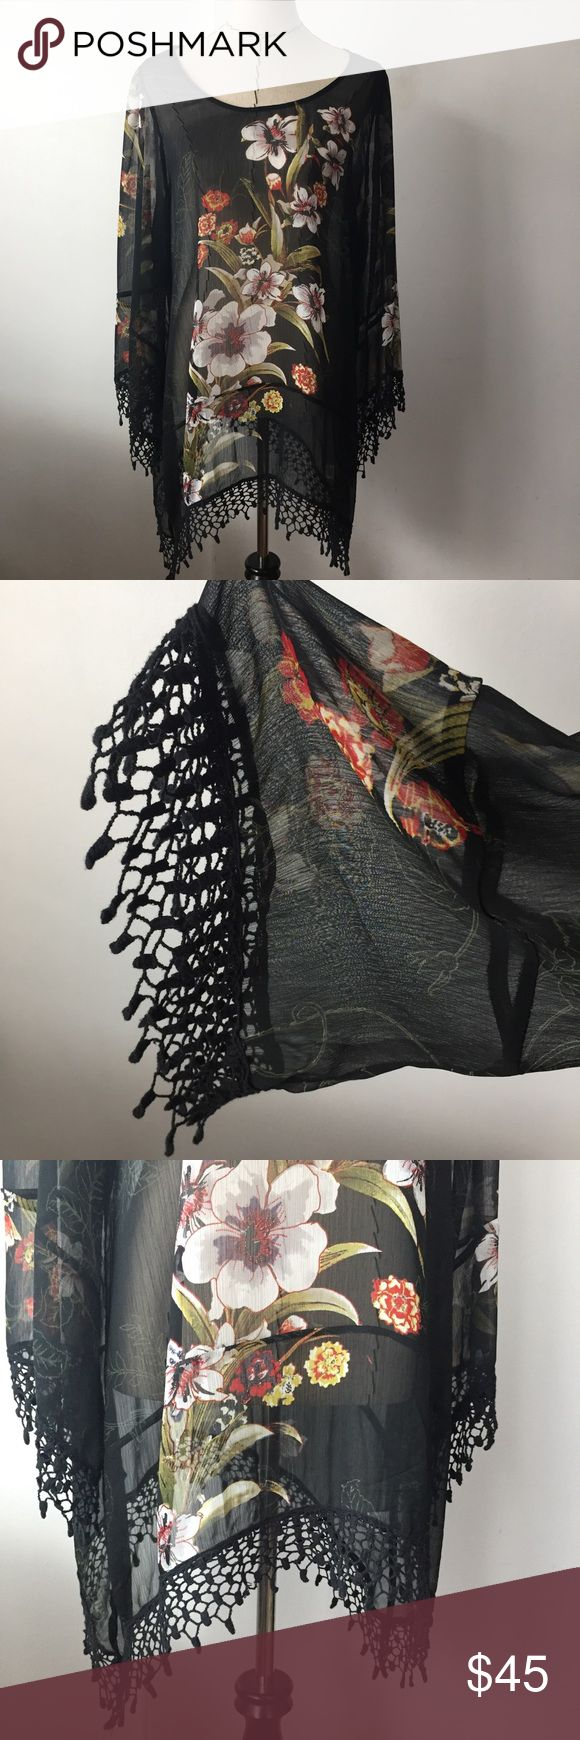 Black floral fringe blouse Super cute black floral blouse! Pair it with jeans for a more casual look or with black pants for a professional look! Semi sheer. Has fringe on the sleeves and bottom of blouse as shown in photo. Mushka by Sienna Rose Inc. Tops Blouses